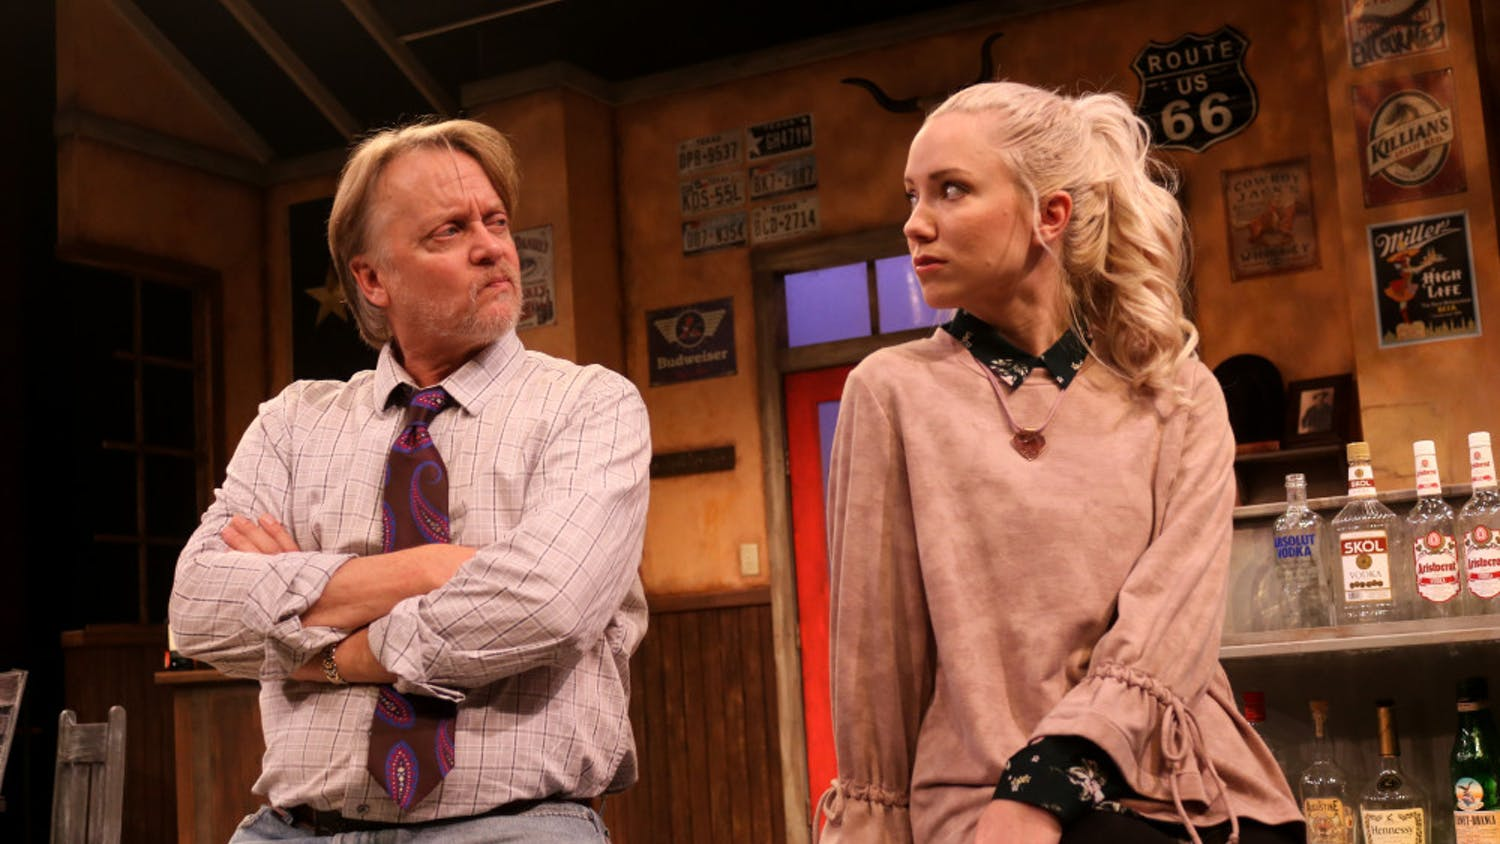 """Bryan Mercer and Marissa Toogood play Walter and Marley in the Hippodrome's""""Lone Star Spirits."""" The two characters have a strained father-daughter relationship, which is one of the keyfocal points of the play."""